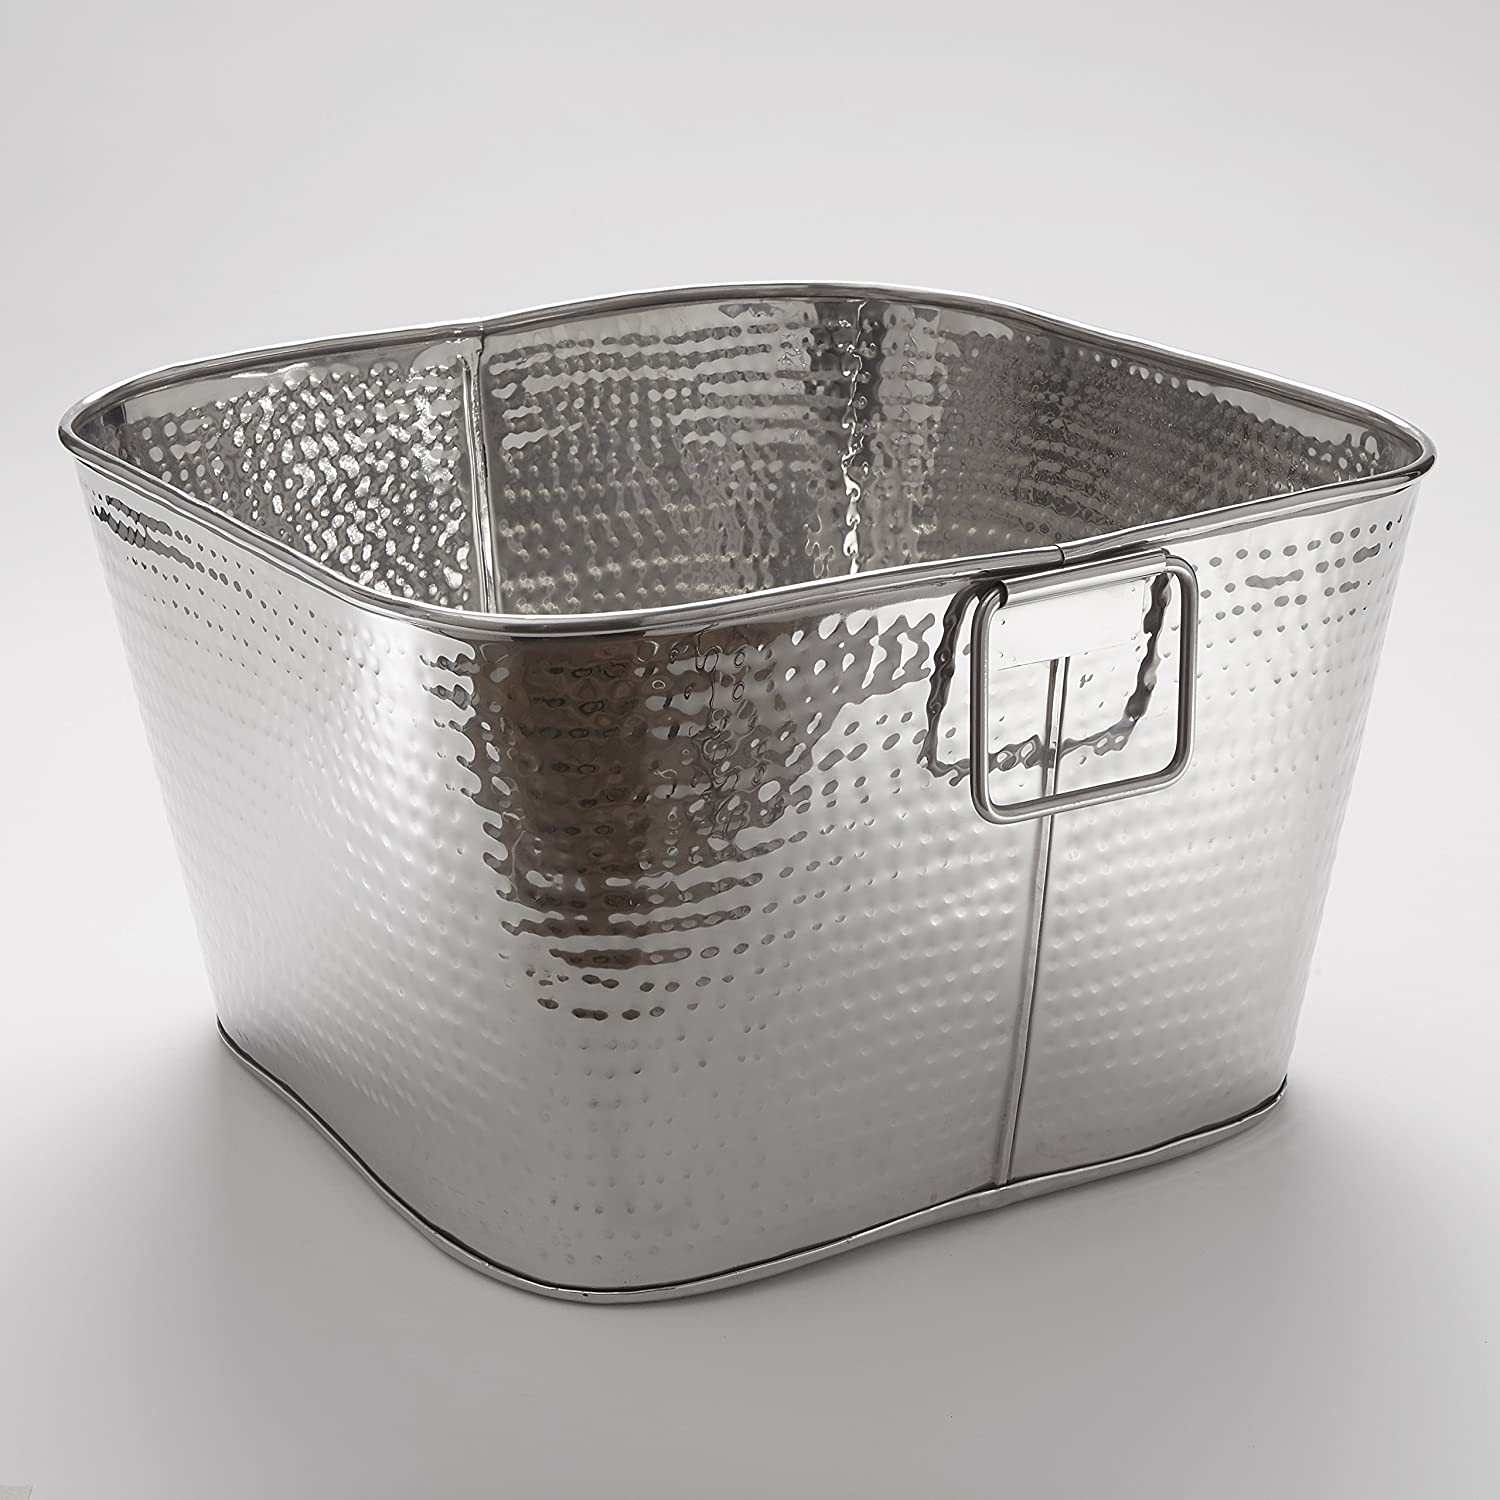 American Metalcraft STH16 supreme Hammered Max 49% OFF Steel Stainless Tub Square